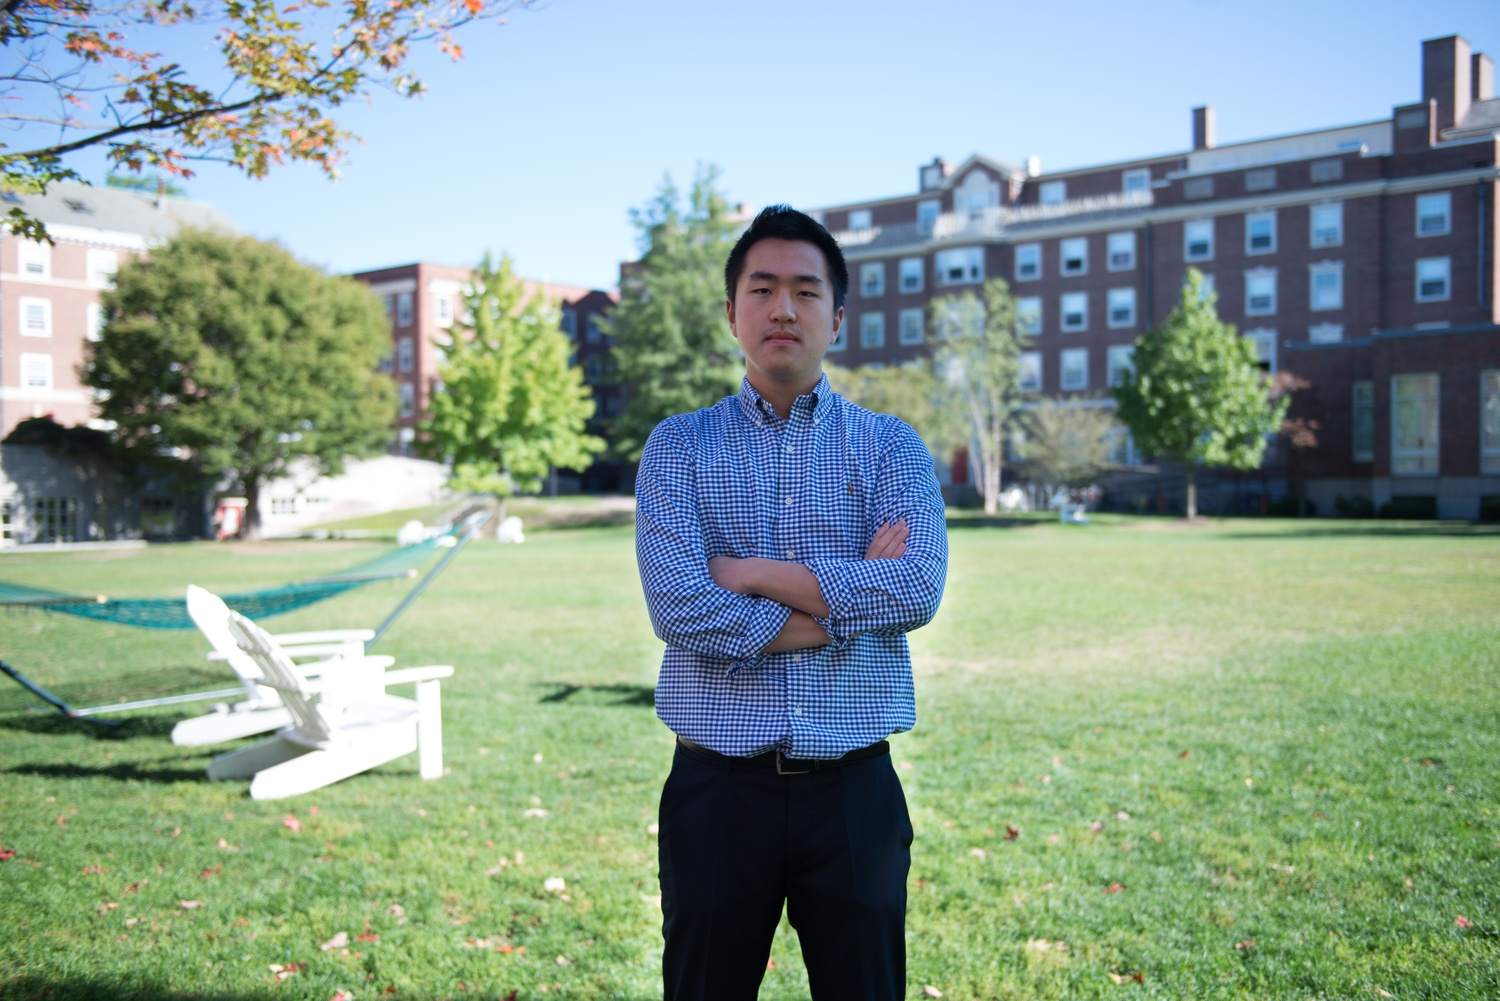 Jin K. Park '18 learned English when he moved to the United States when he was 7 years old.